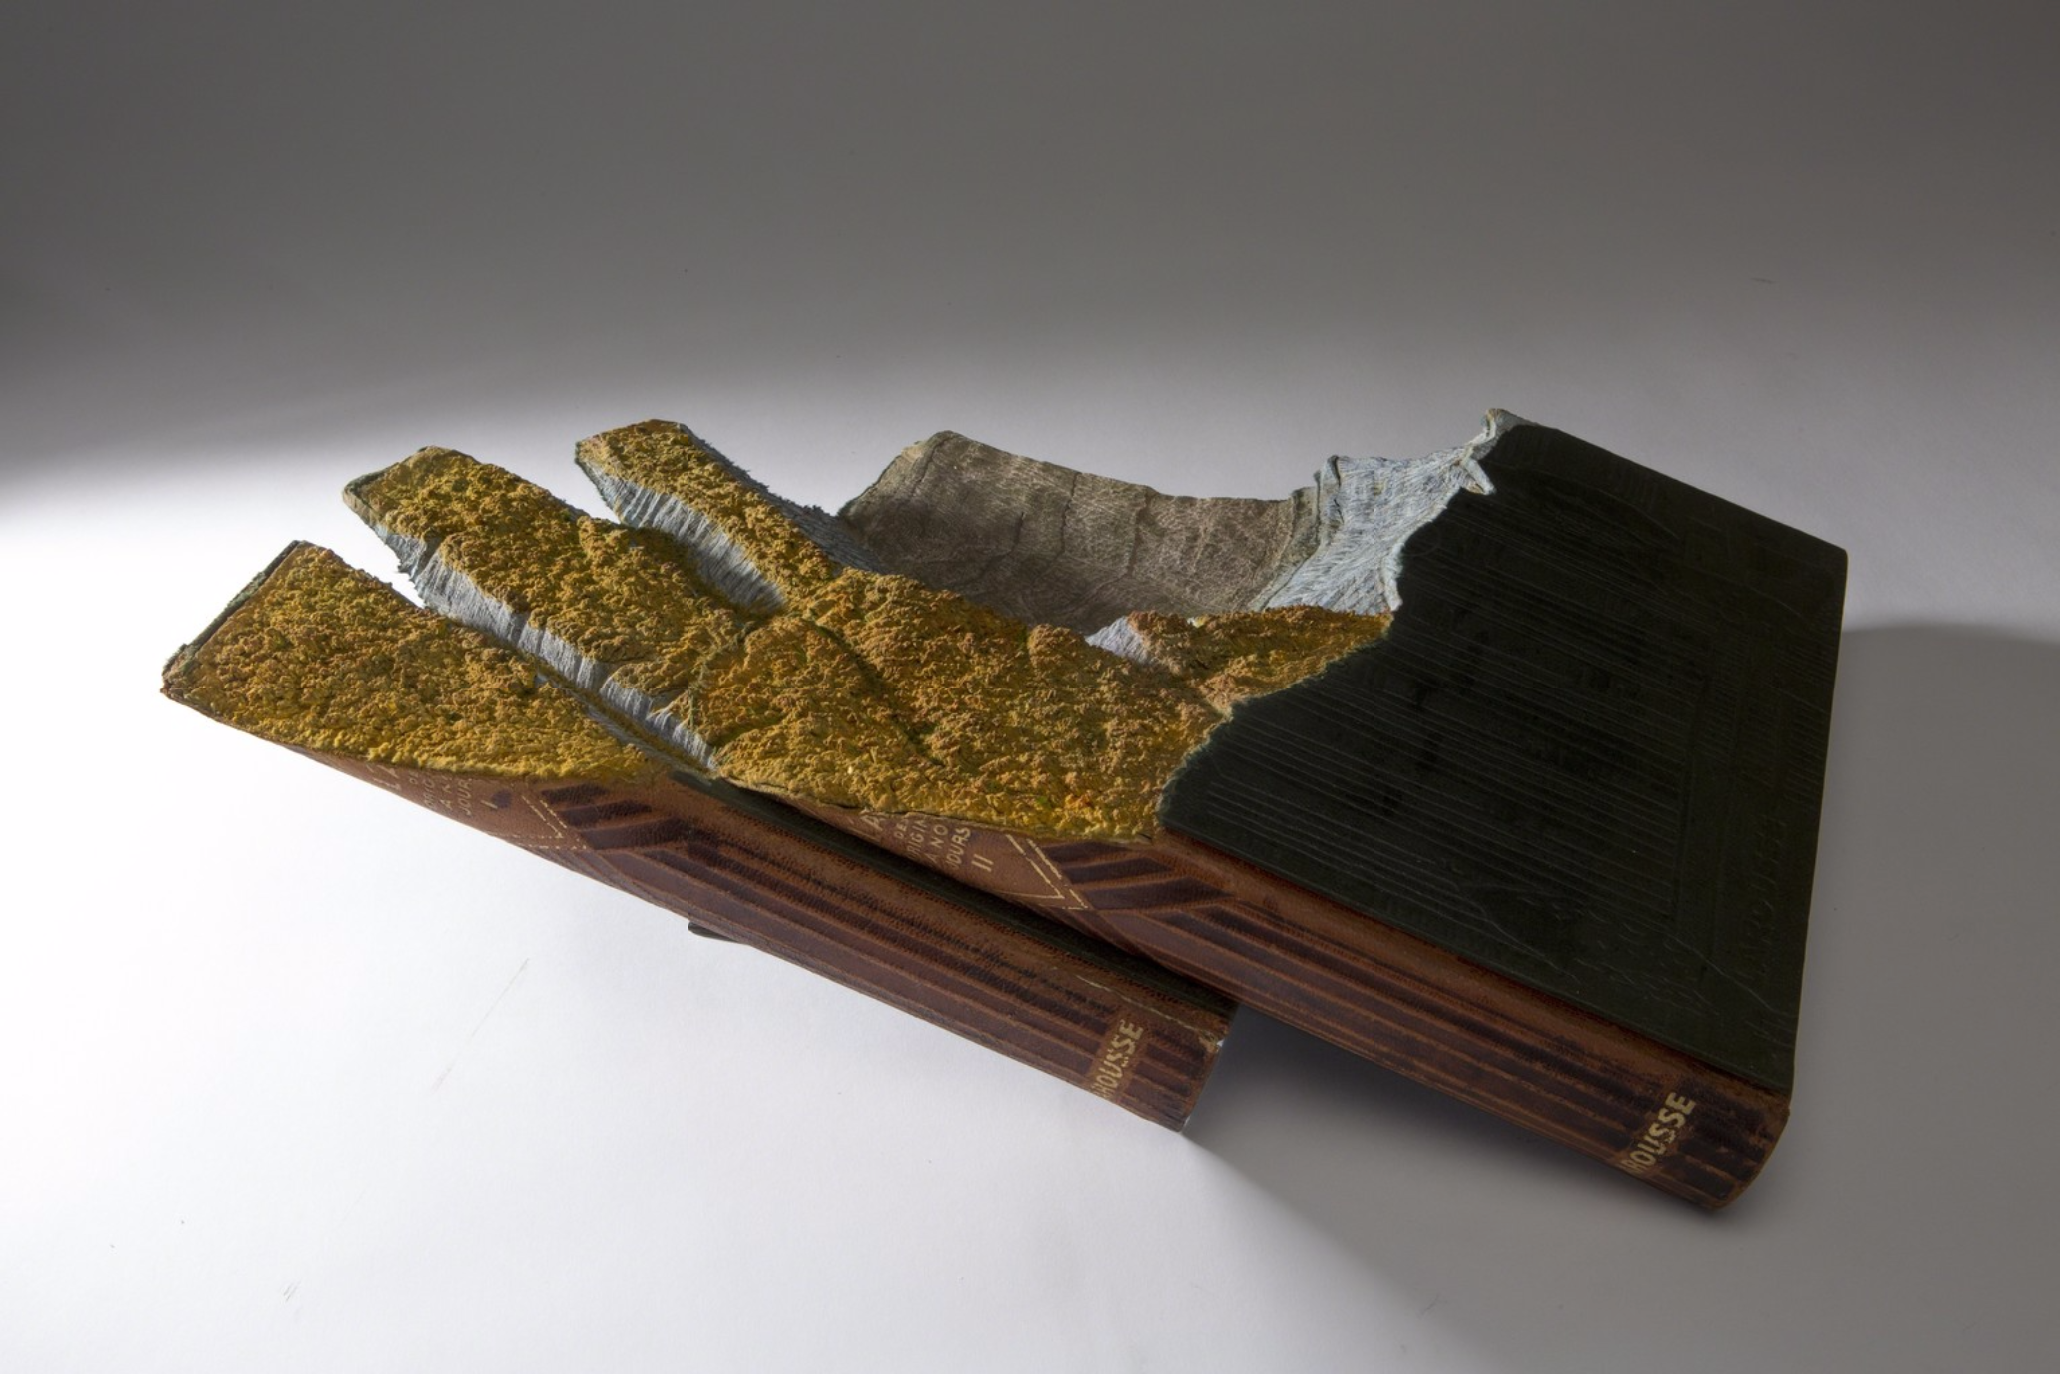 Guy Laramee Creates Hyperrealistic Topographic Landscapes Carved into Old Books - Fall